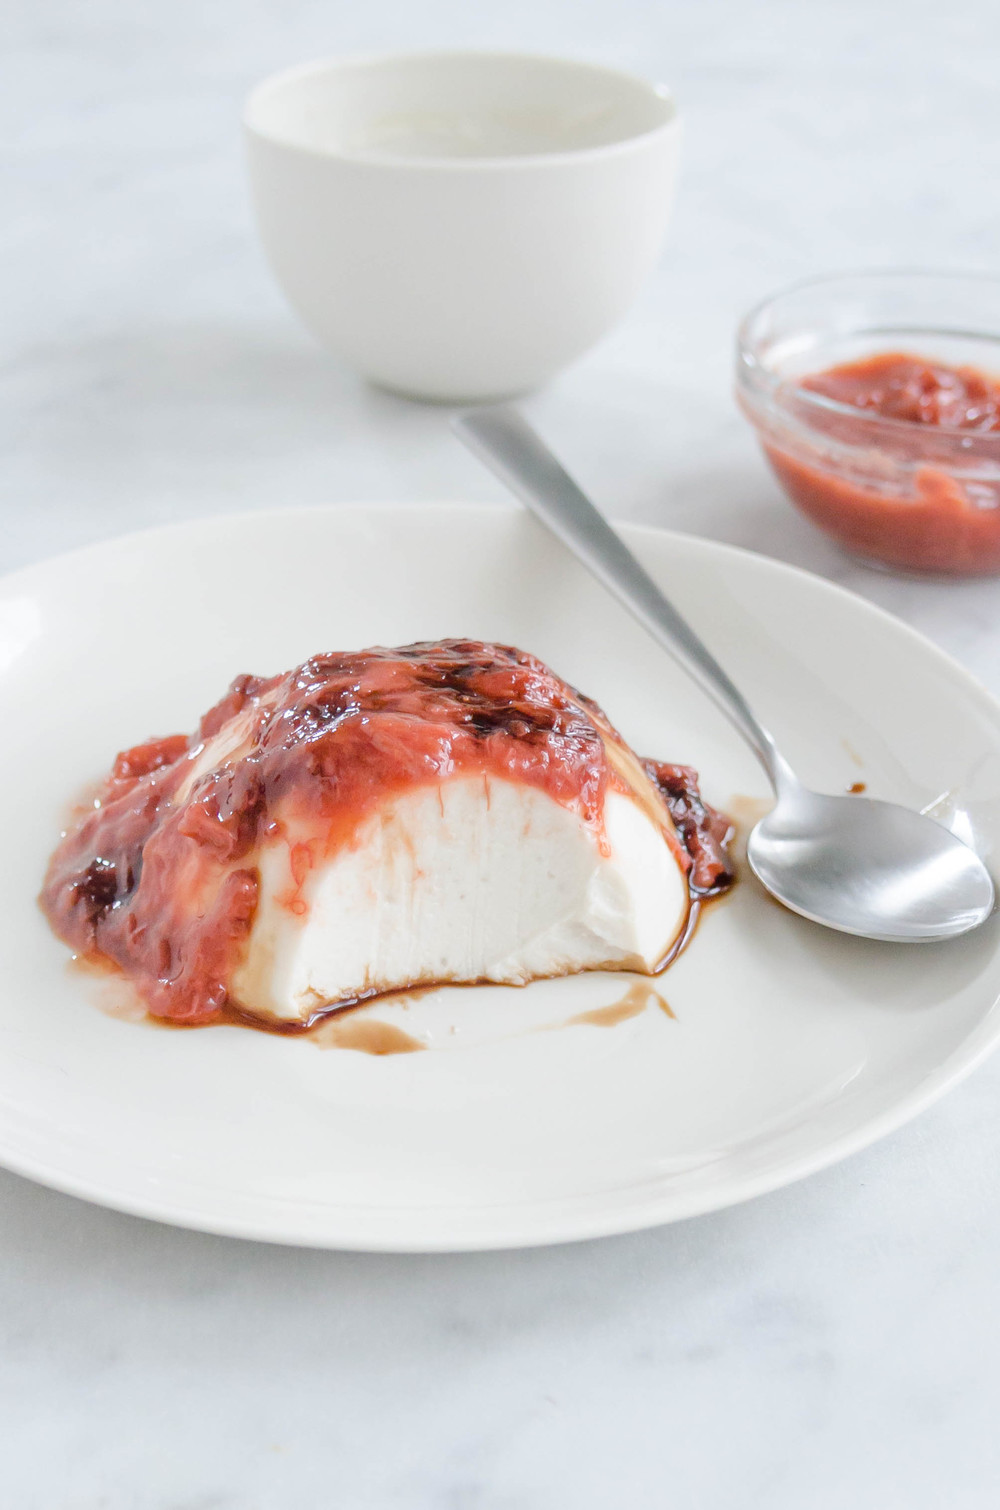 Vegan Vanilla Panna Cotta with Rhubarb and Strawberry Compote